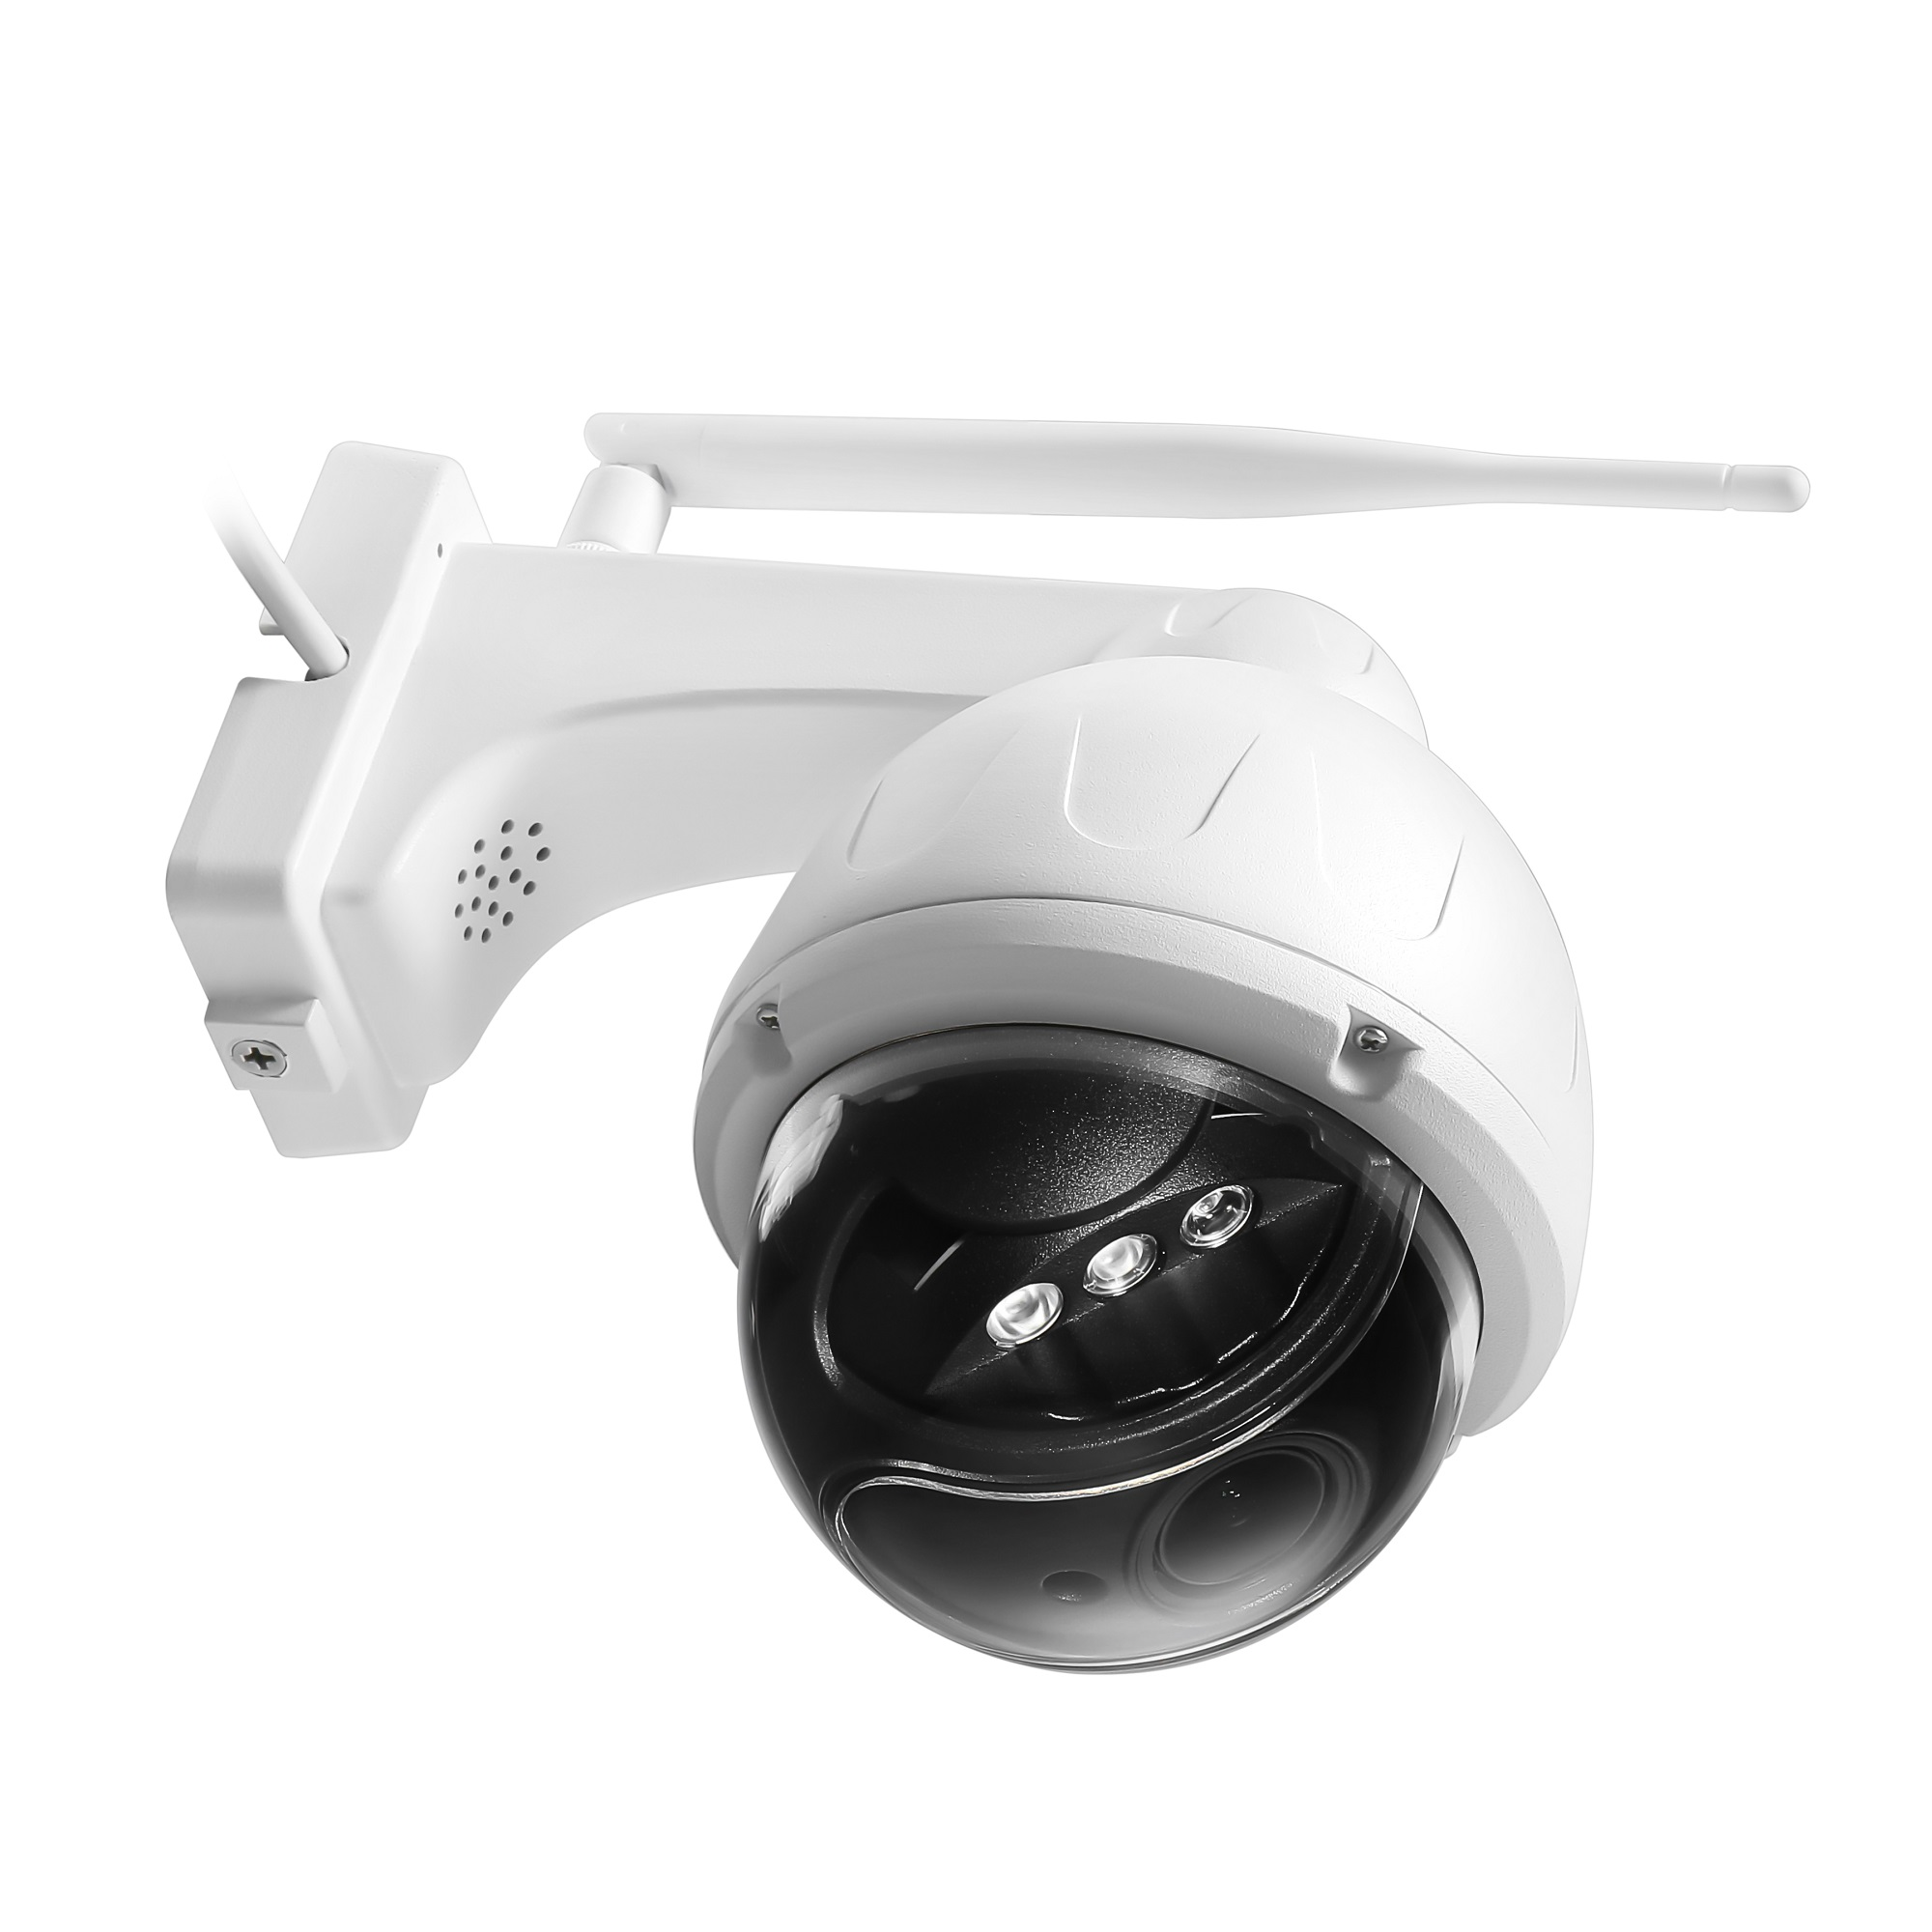 Newest 5MP wireless outdoor dome PTZ IP camera